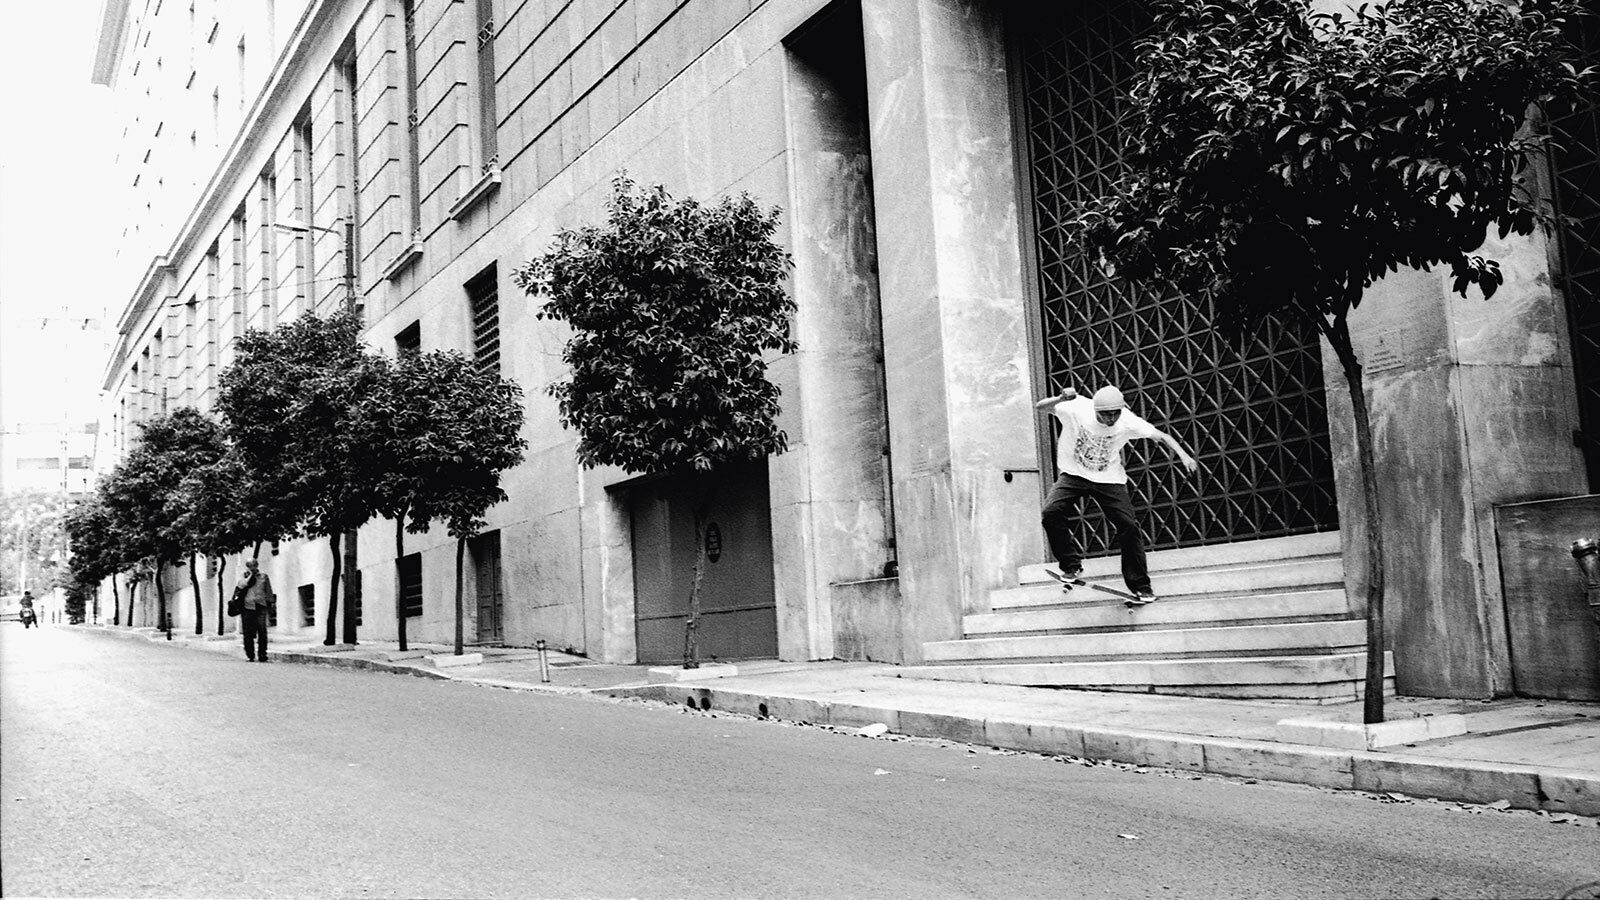 Soloskatemag Hiro Crooked